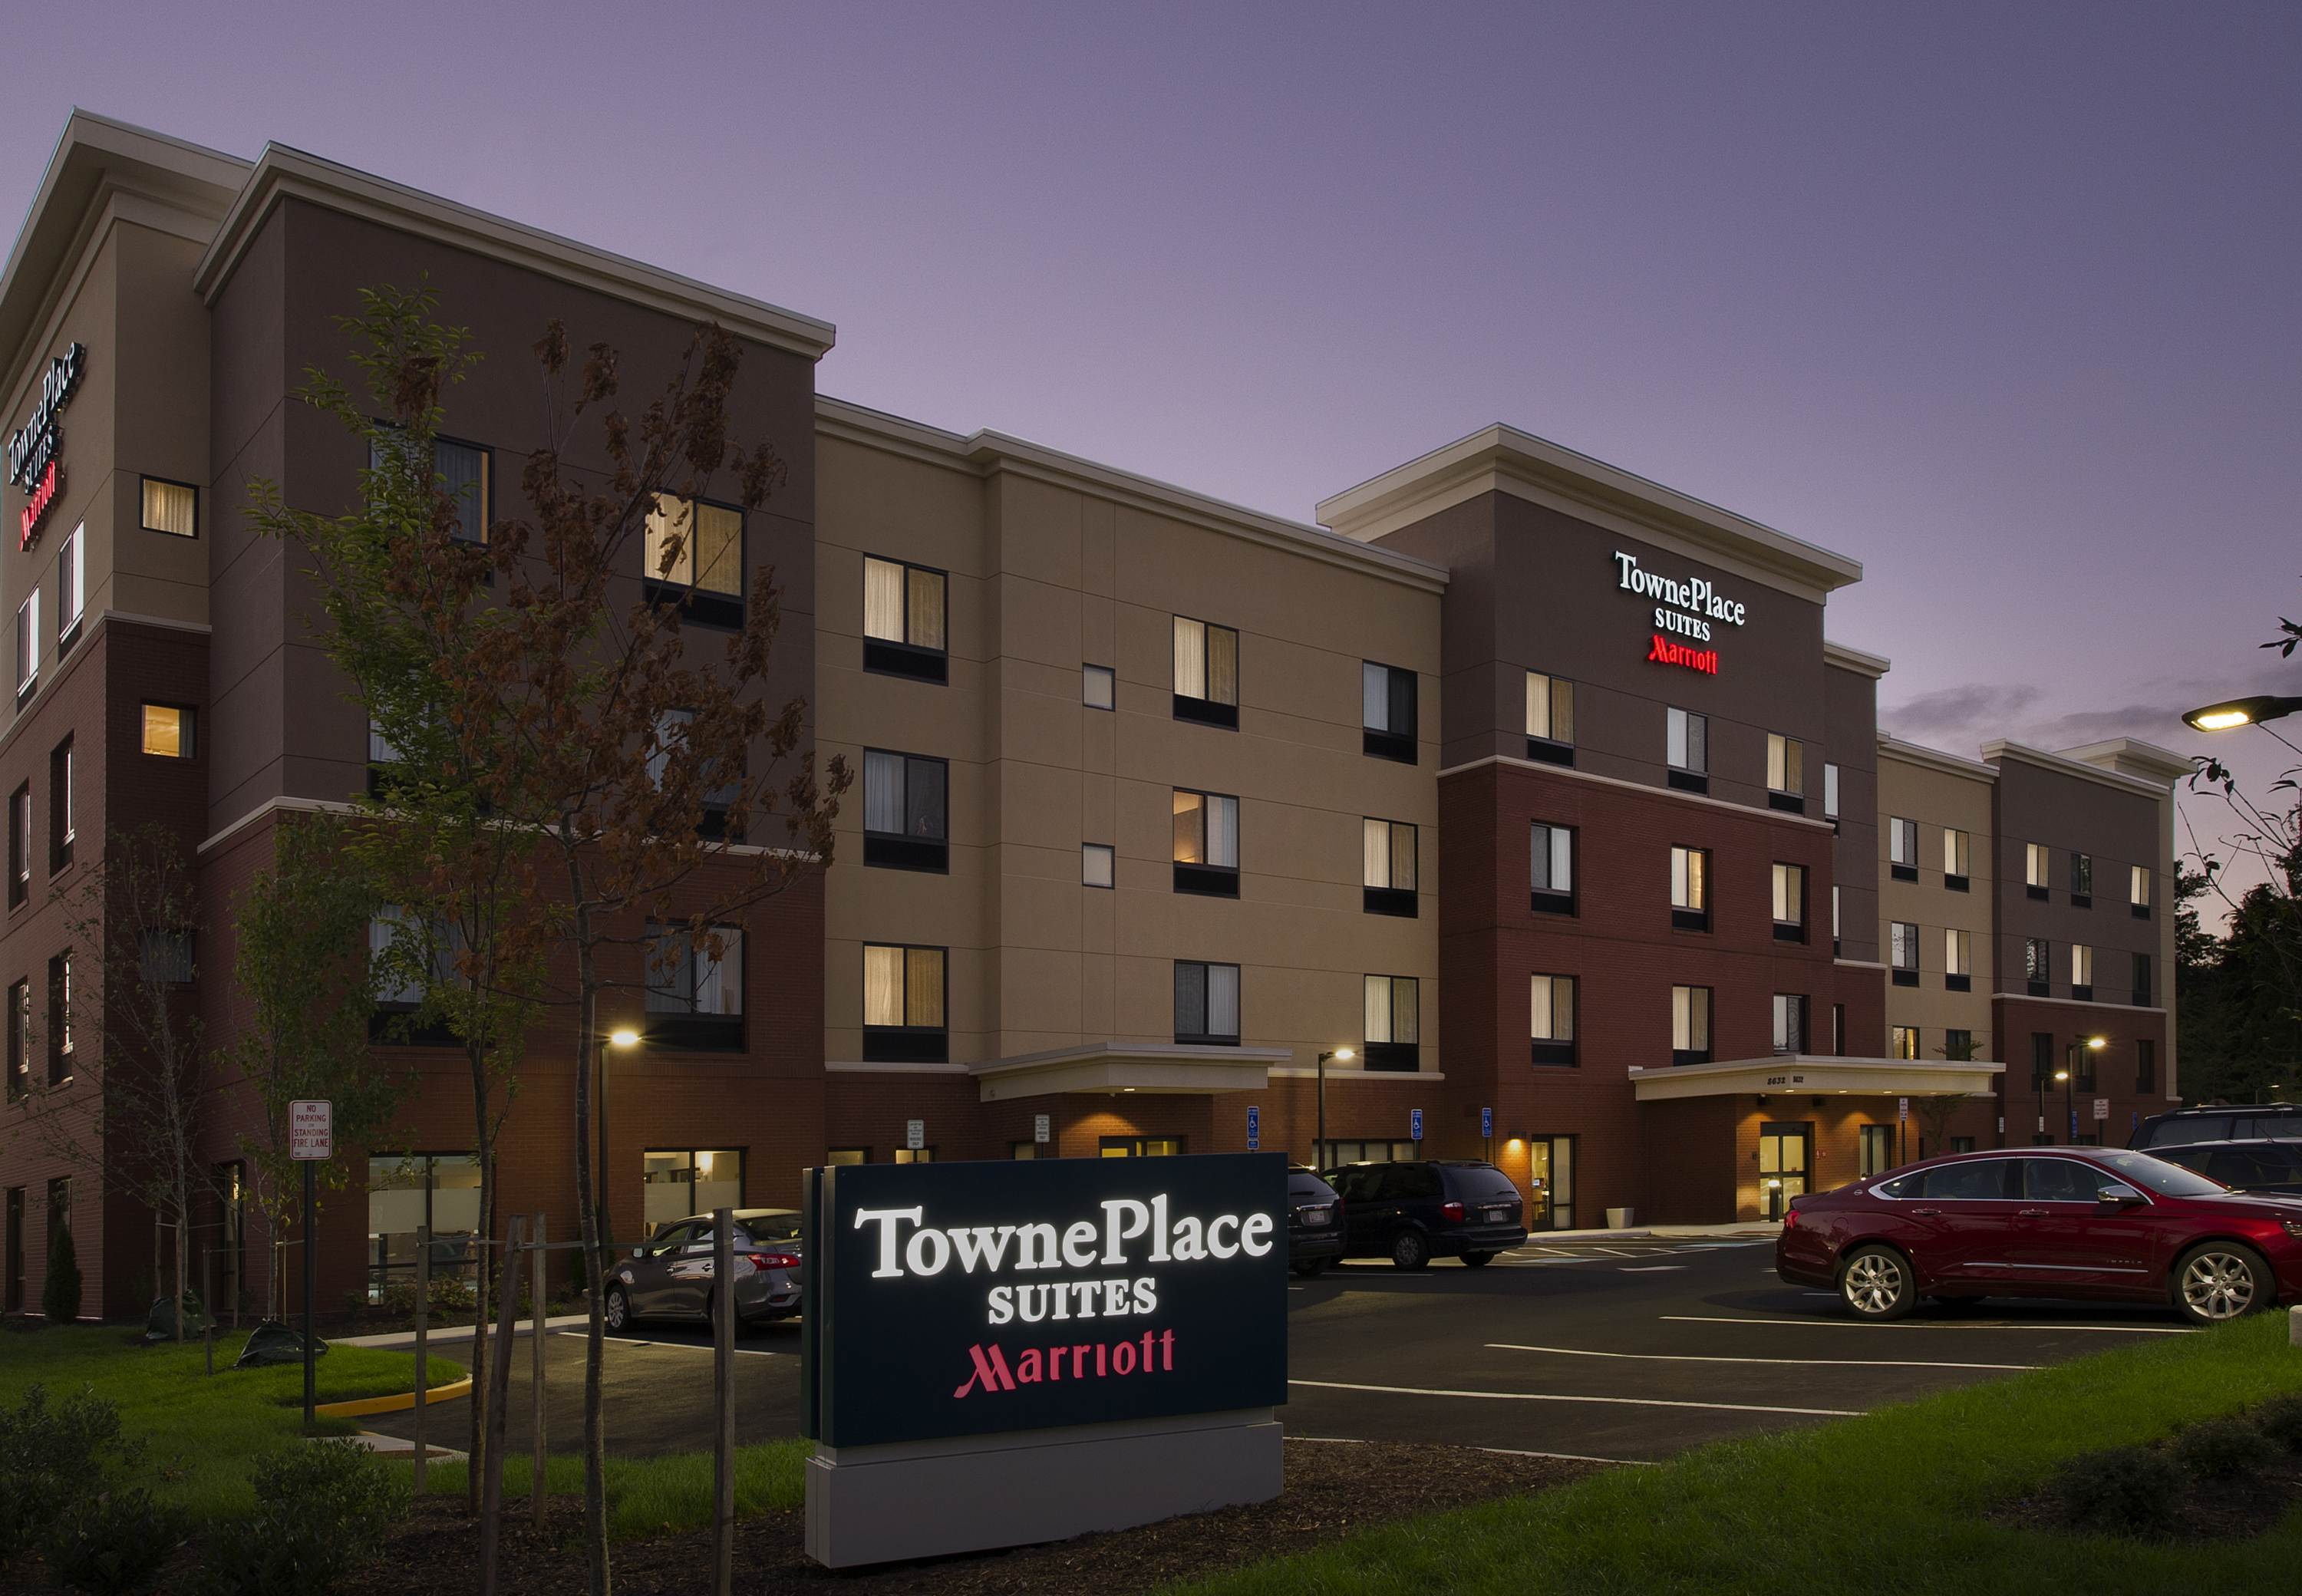 TownePlace Suites by Marriott Alexandria Fort Belvoir image 1